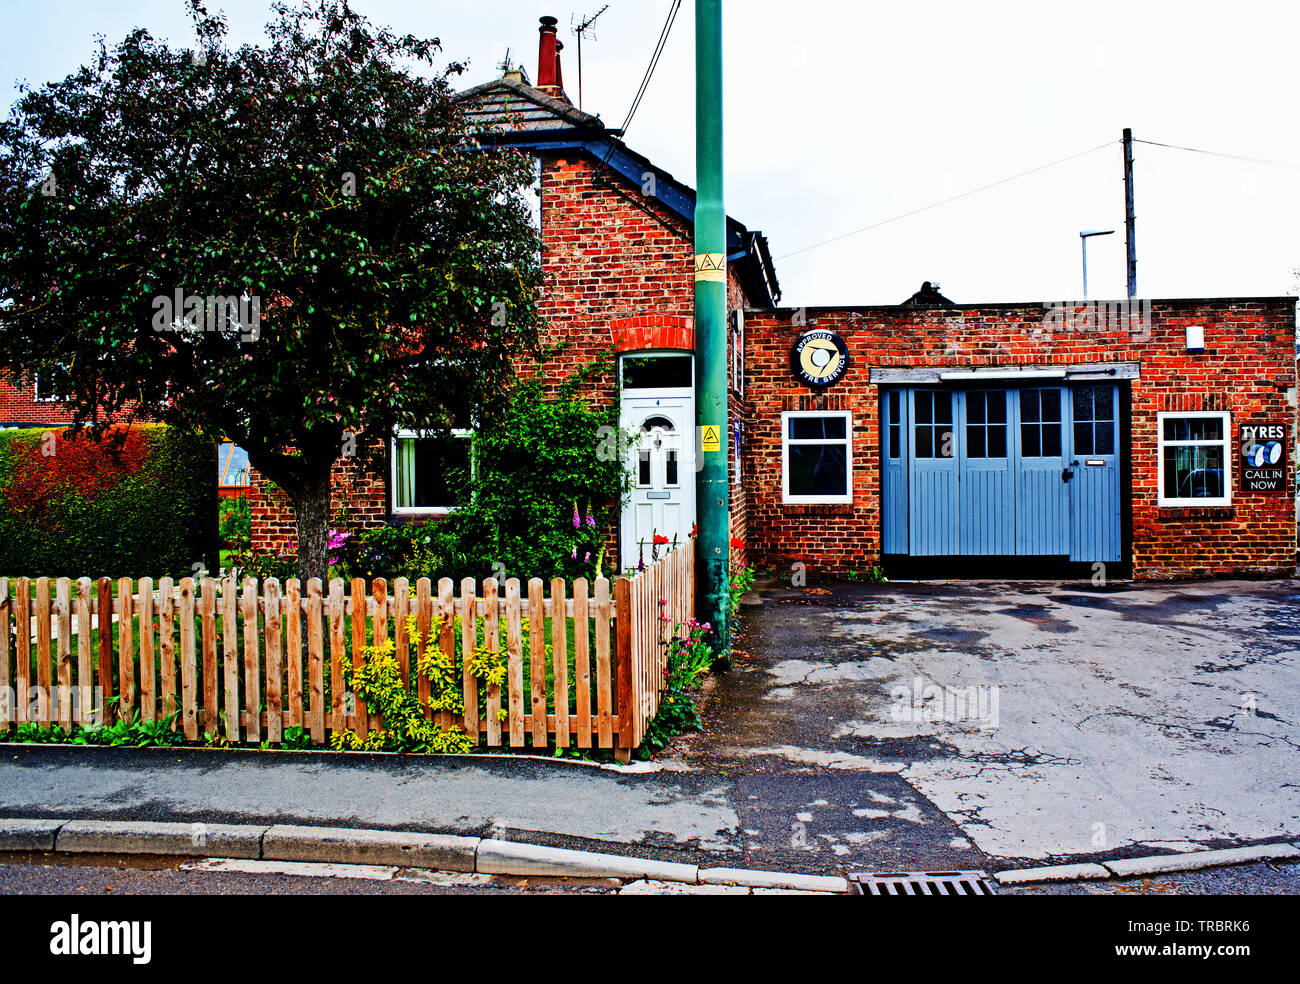 Arncliffe garage, Kirklevington, North Yorkshire, England Stock Photo